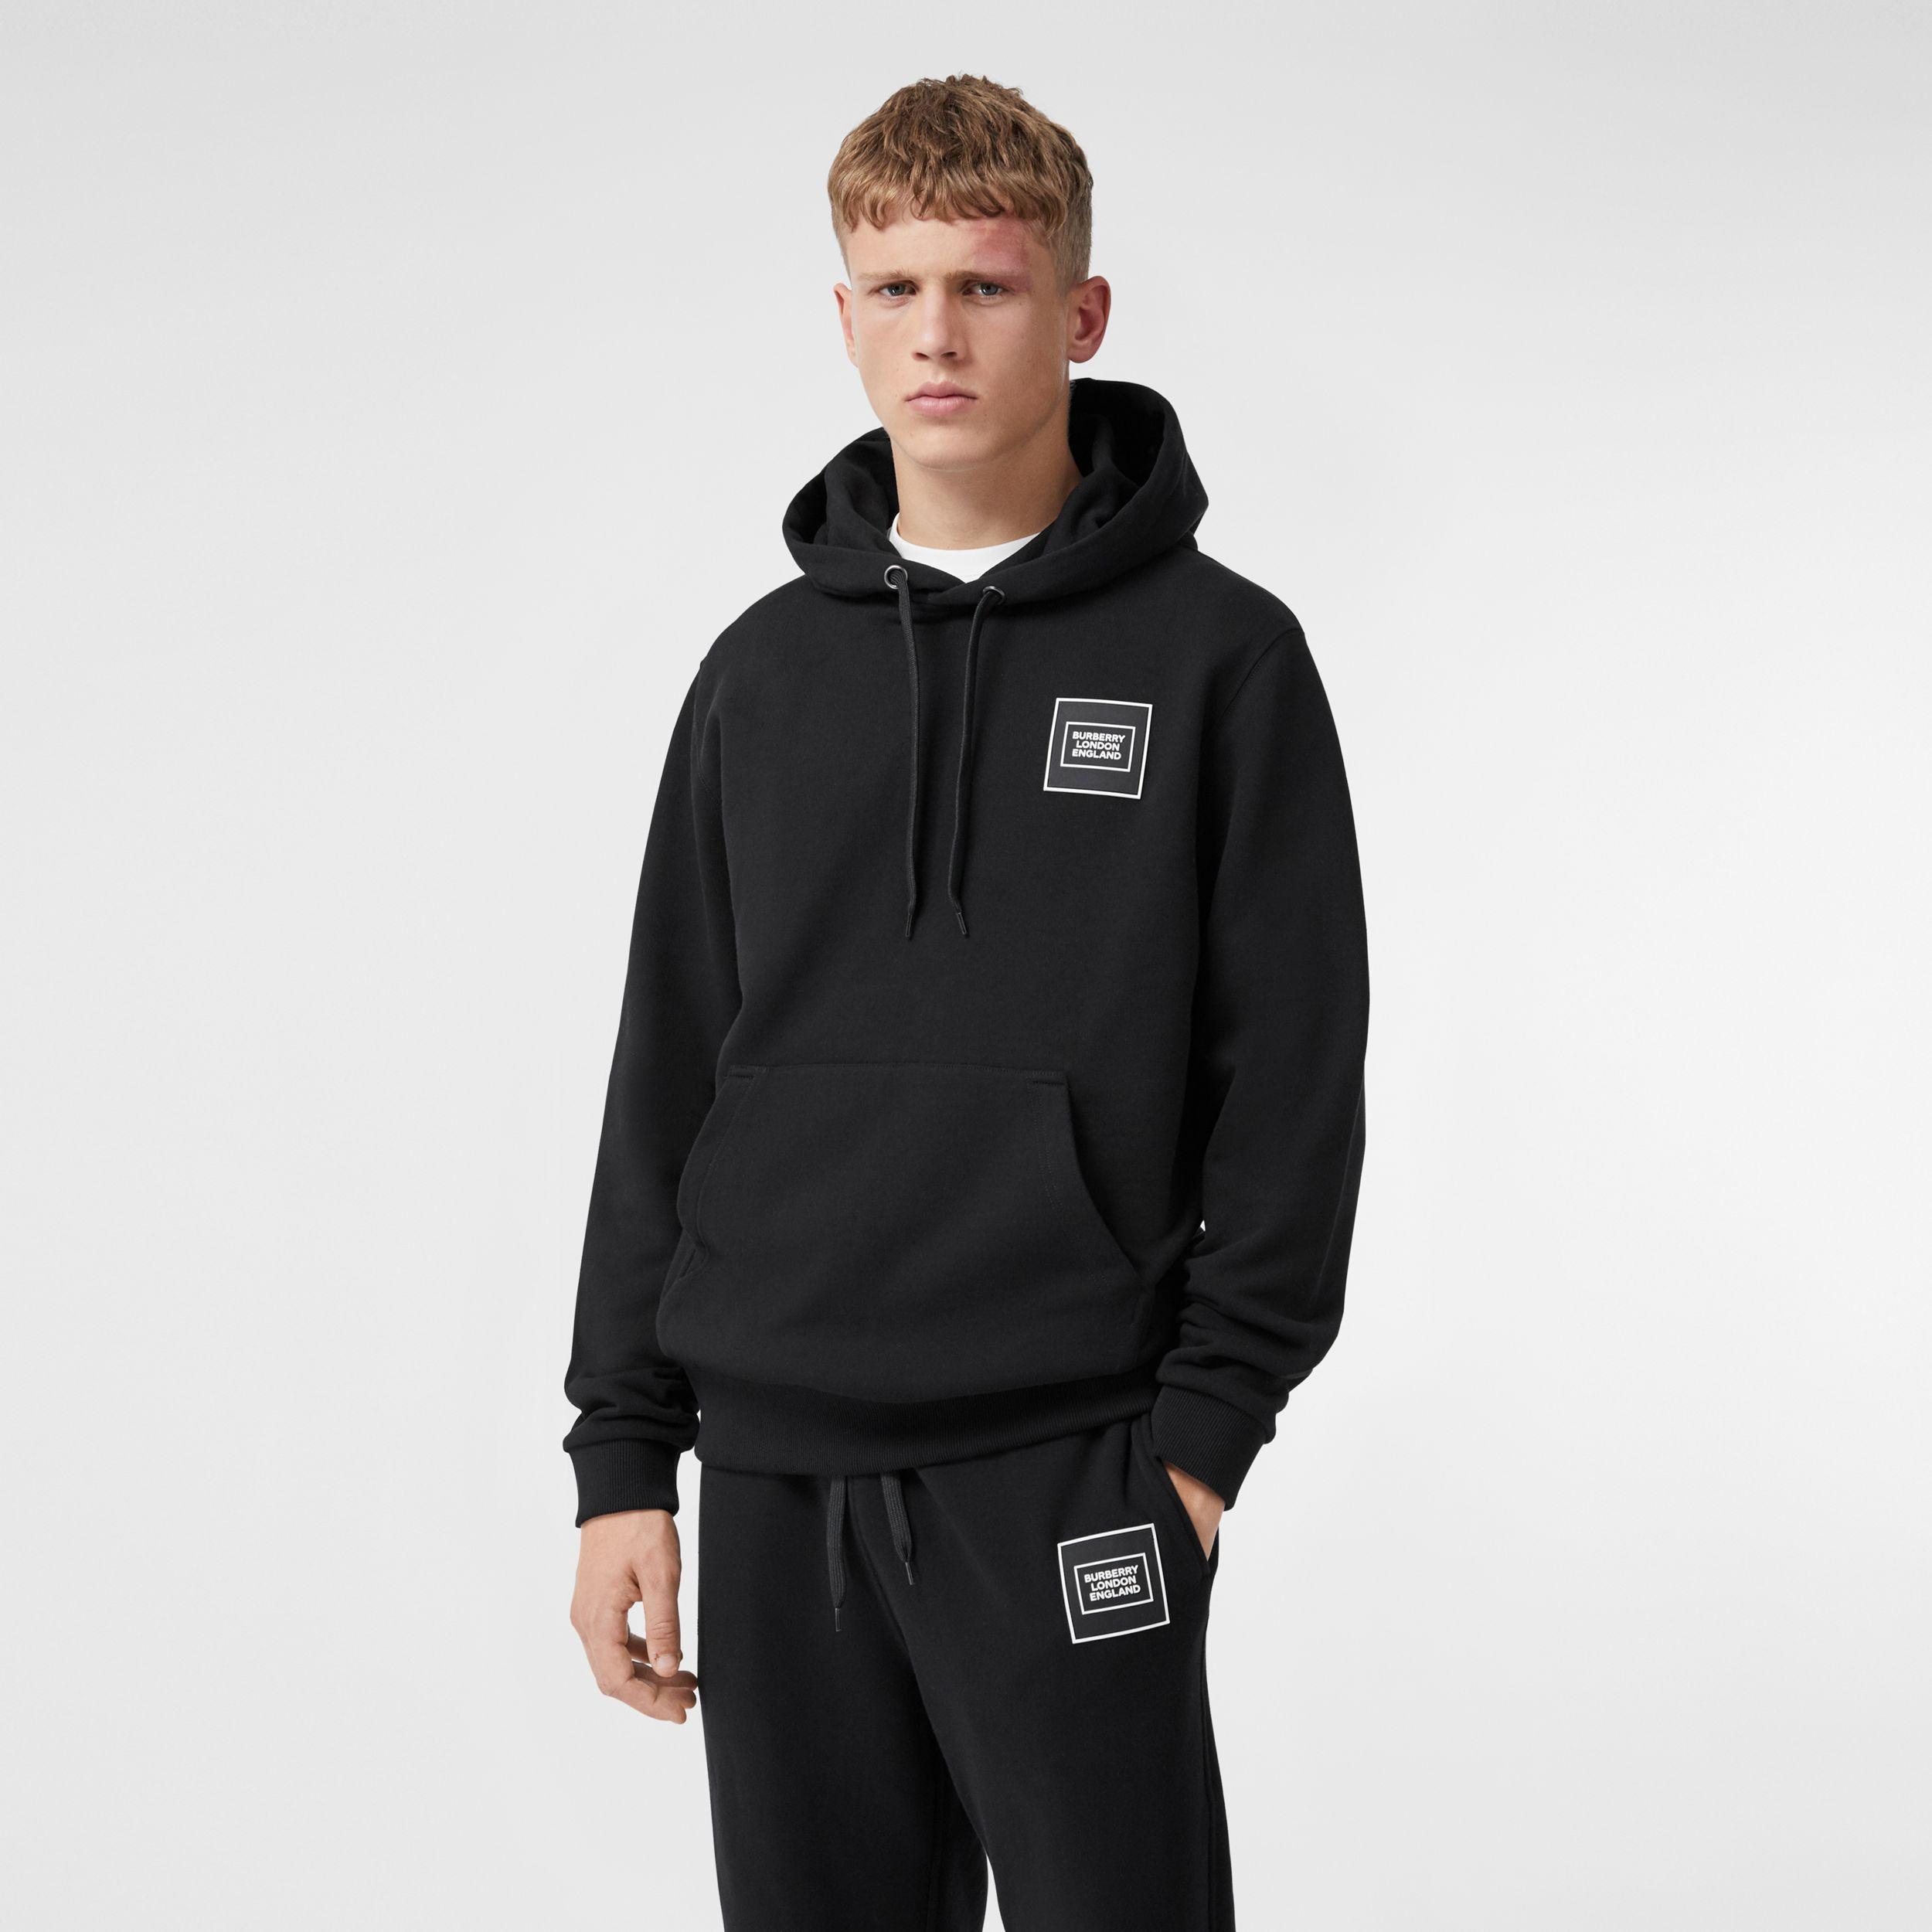 Logo Appliqué Cotton Hoodie in Black - Men | Burberry - 1